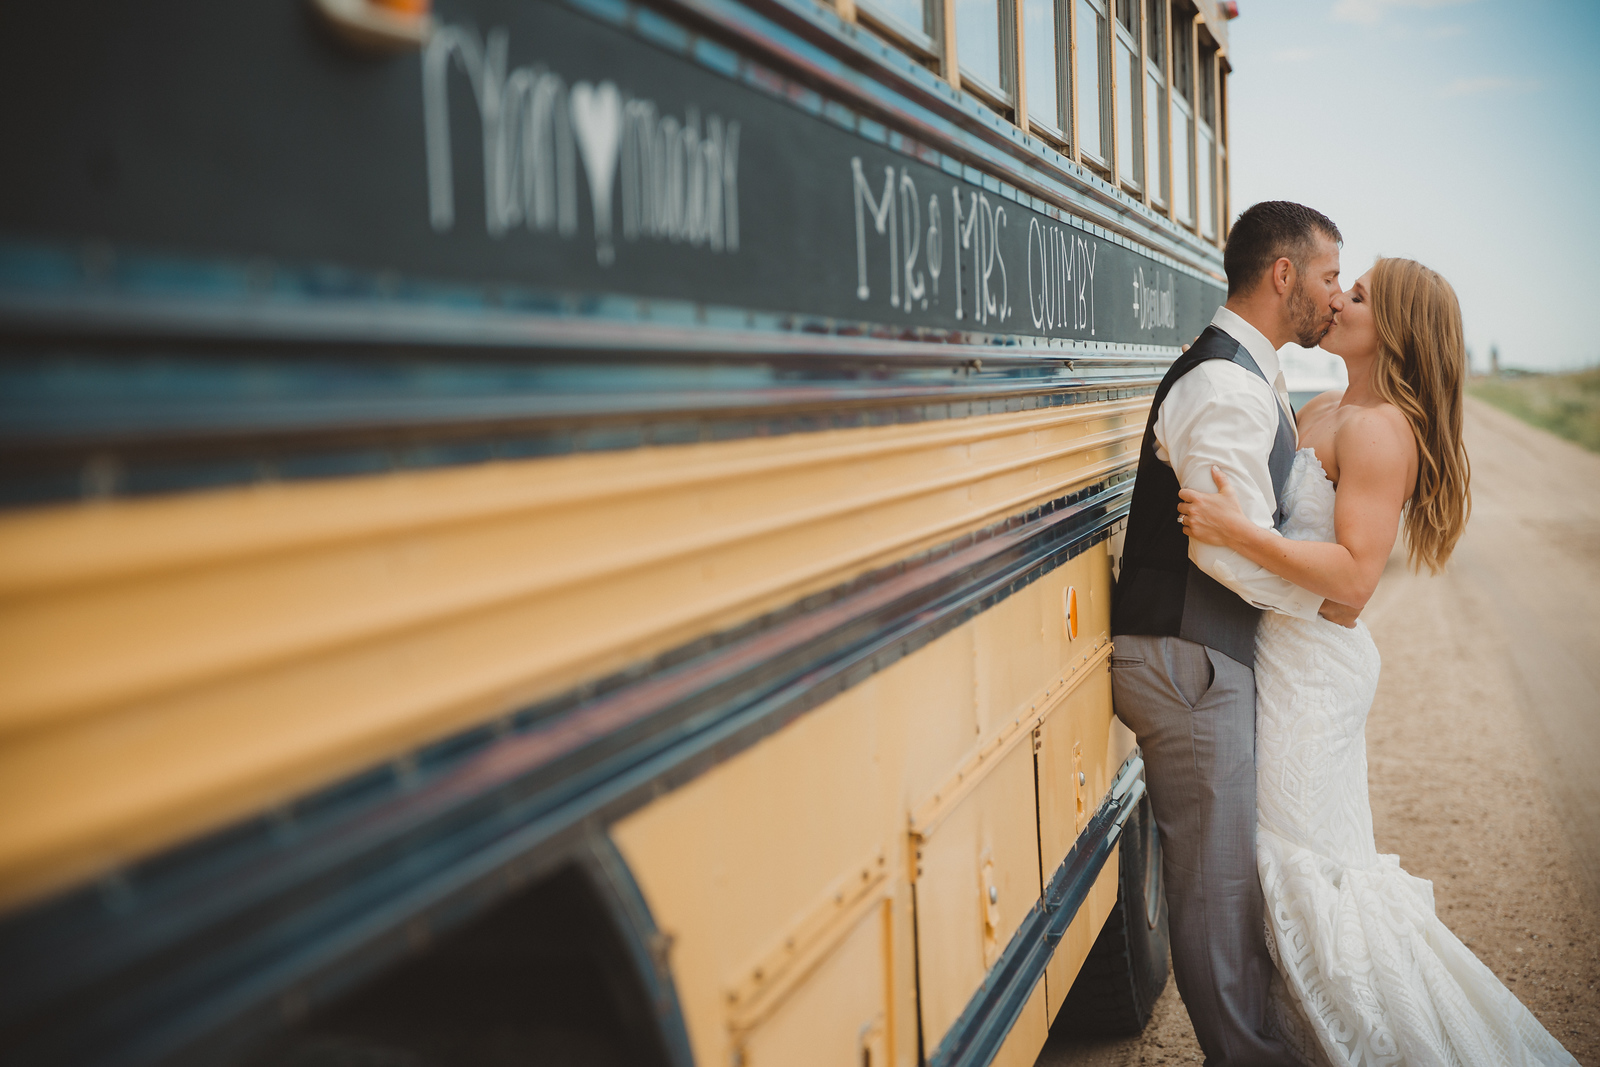 Newlywed P.E. Teachers share a kiss next to school bus